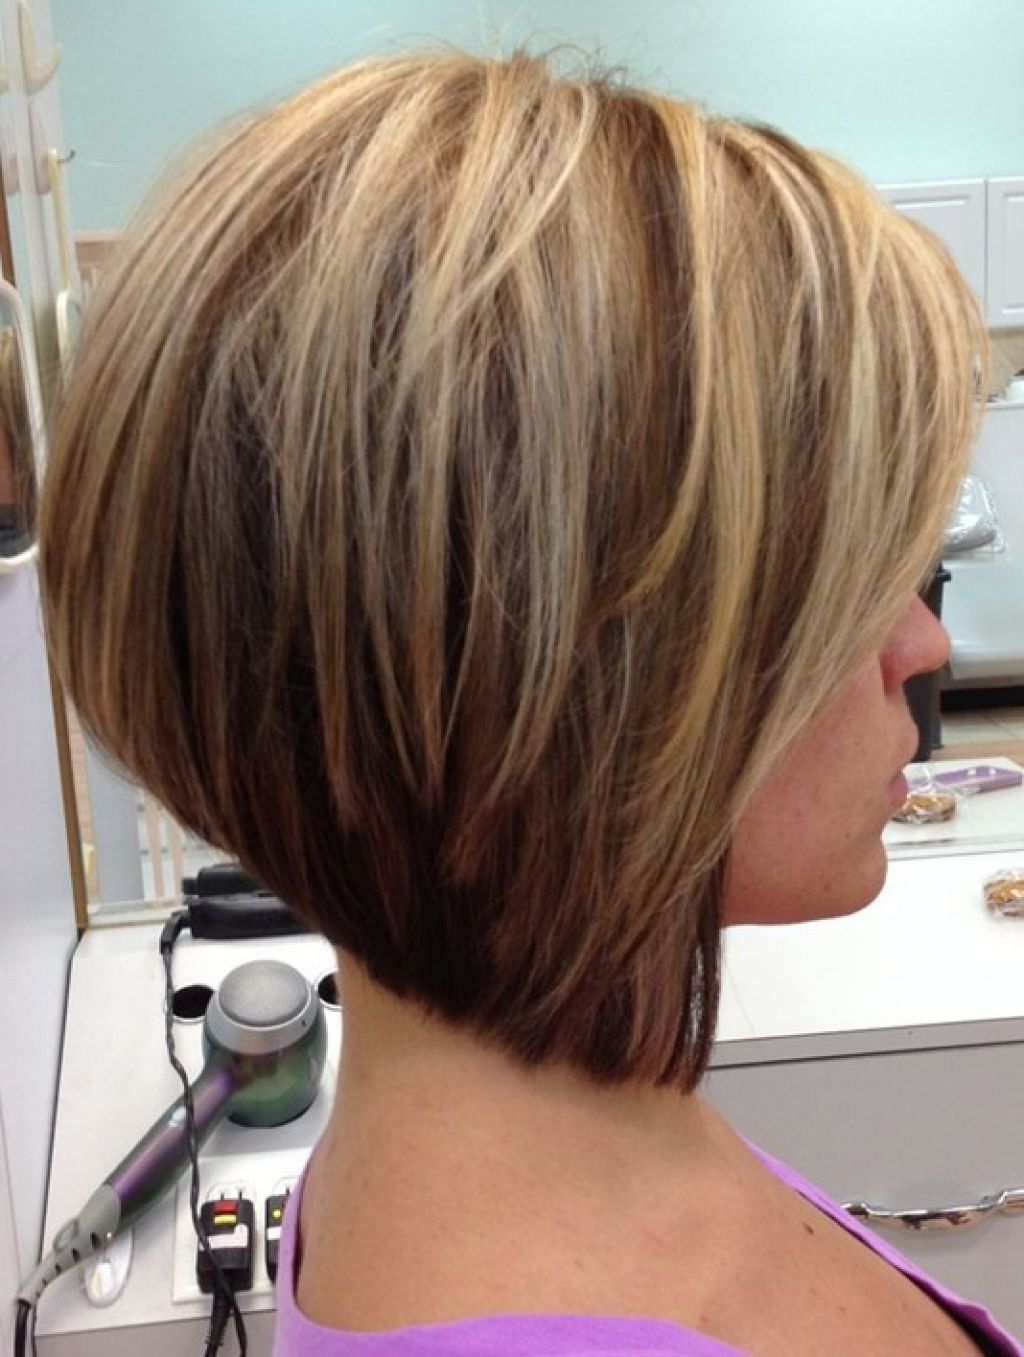 Short Stacked Hairstyles Simple Hairstylesshort Stacked Bob Hairstyles Back View  Top Hairstyles